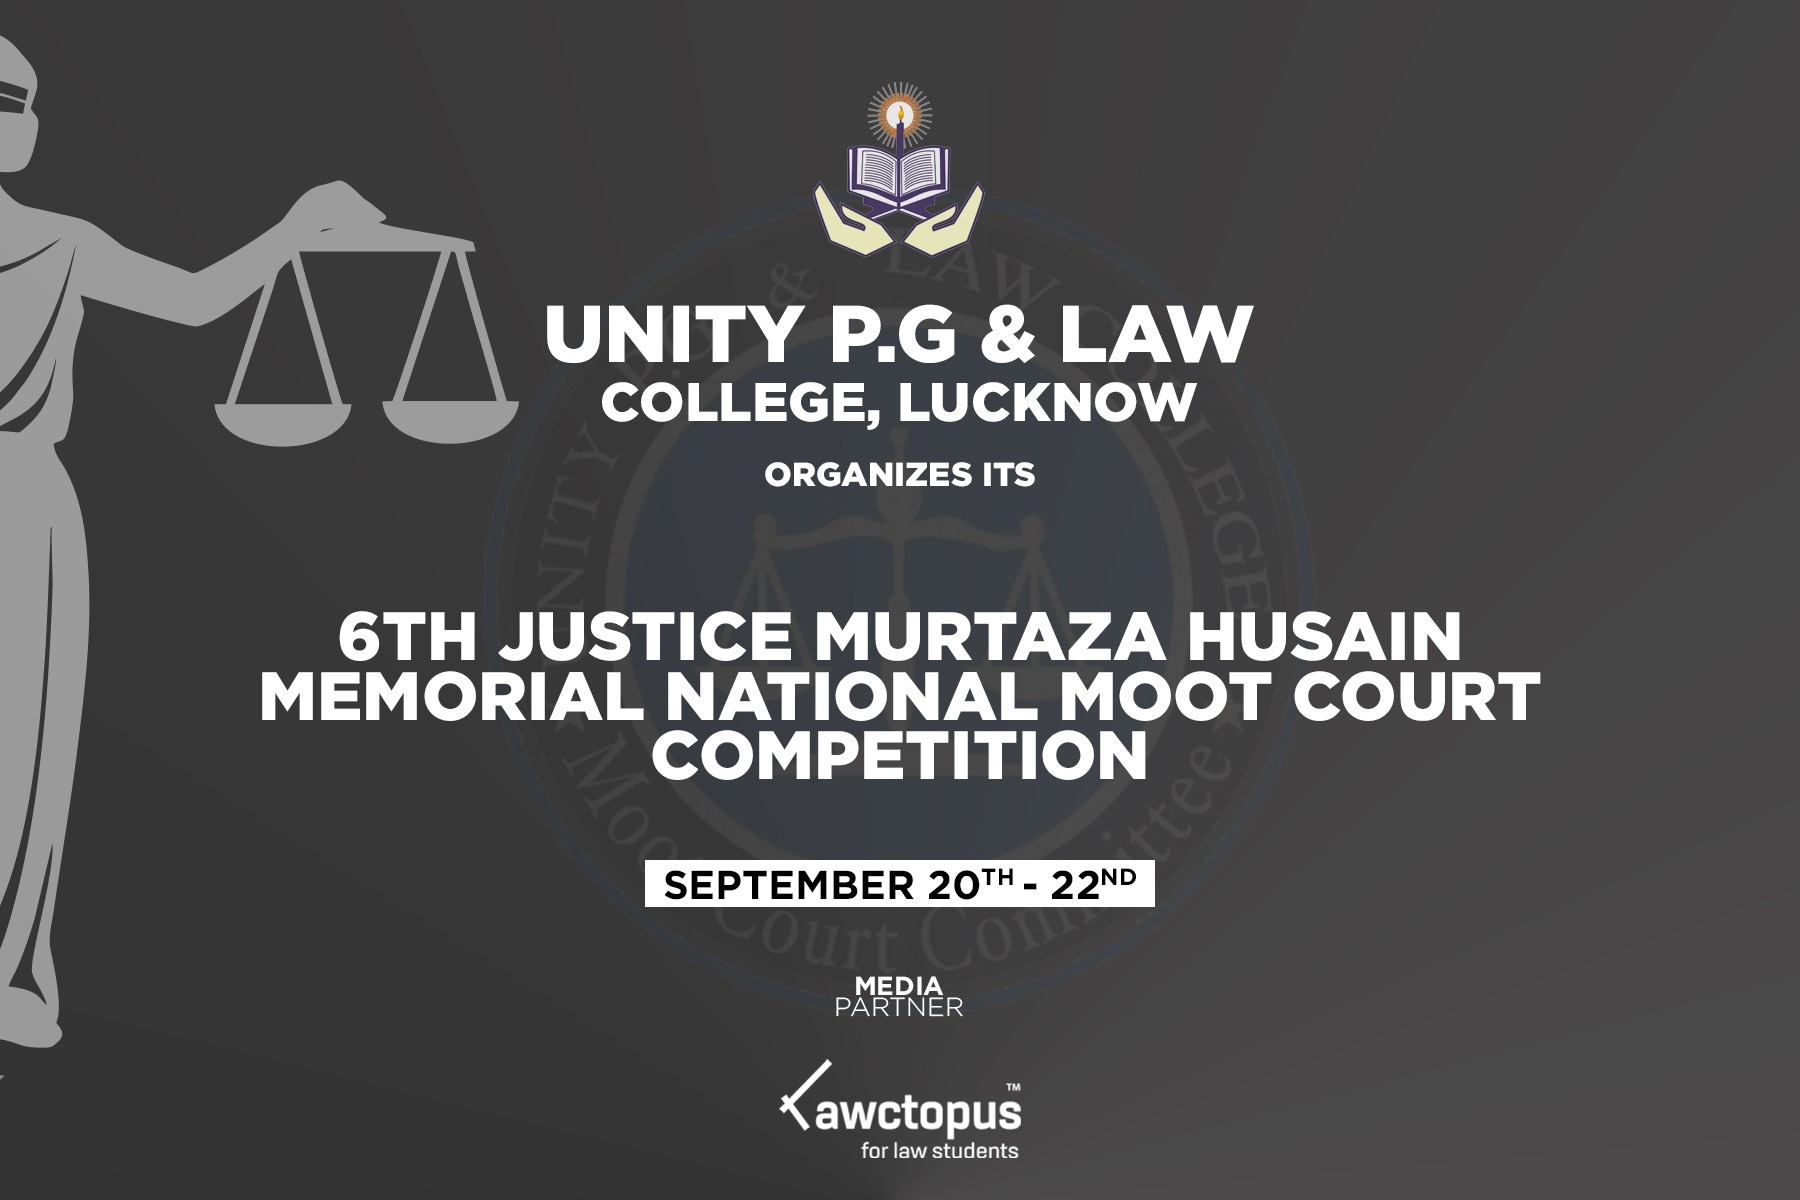 6th Justice Murtaza Husain Memorial Moot Court @ Unity PG and Law College